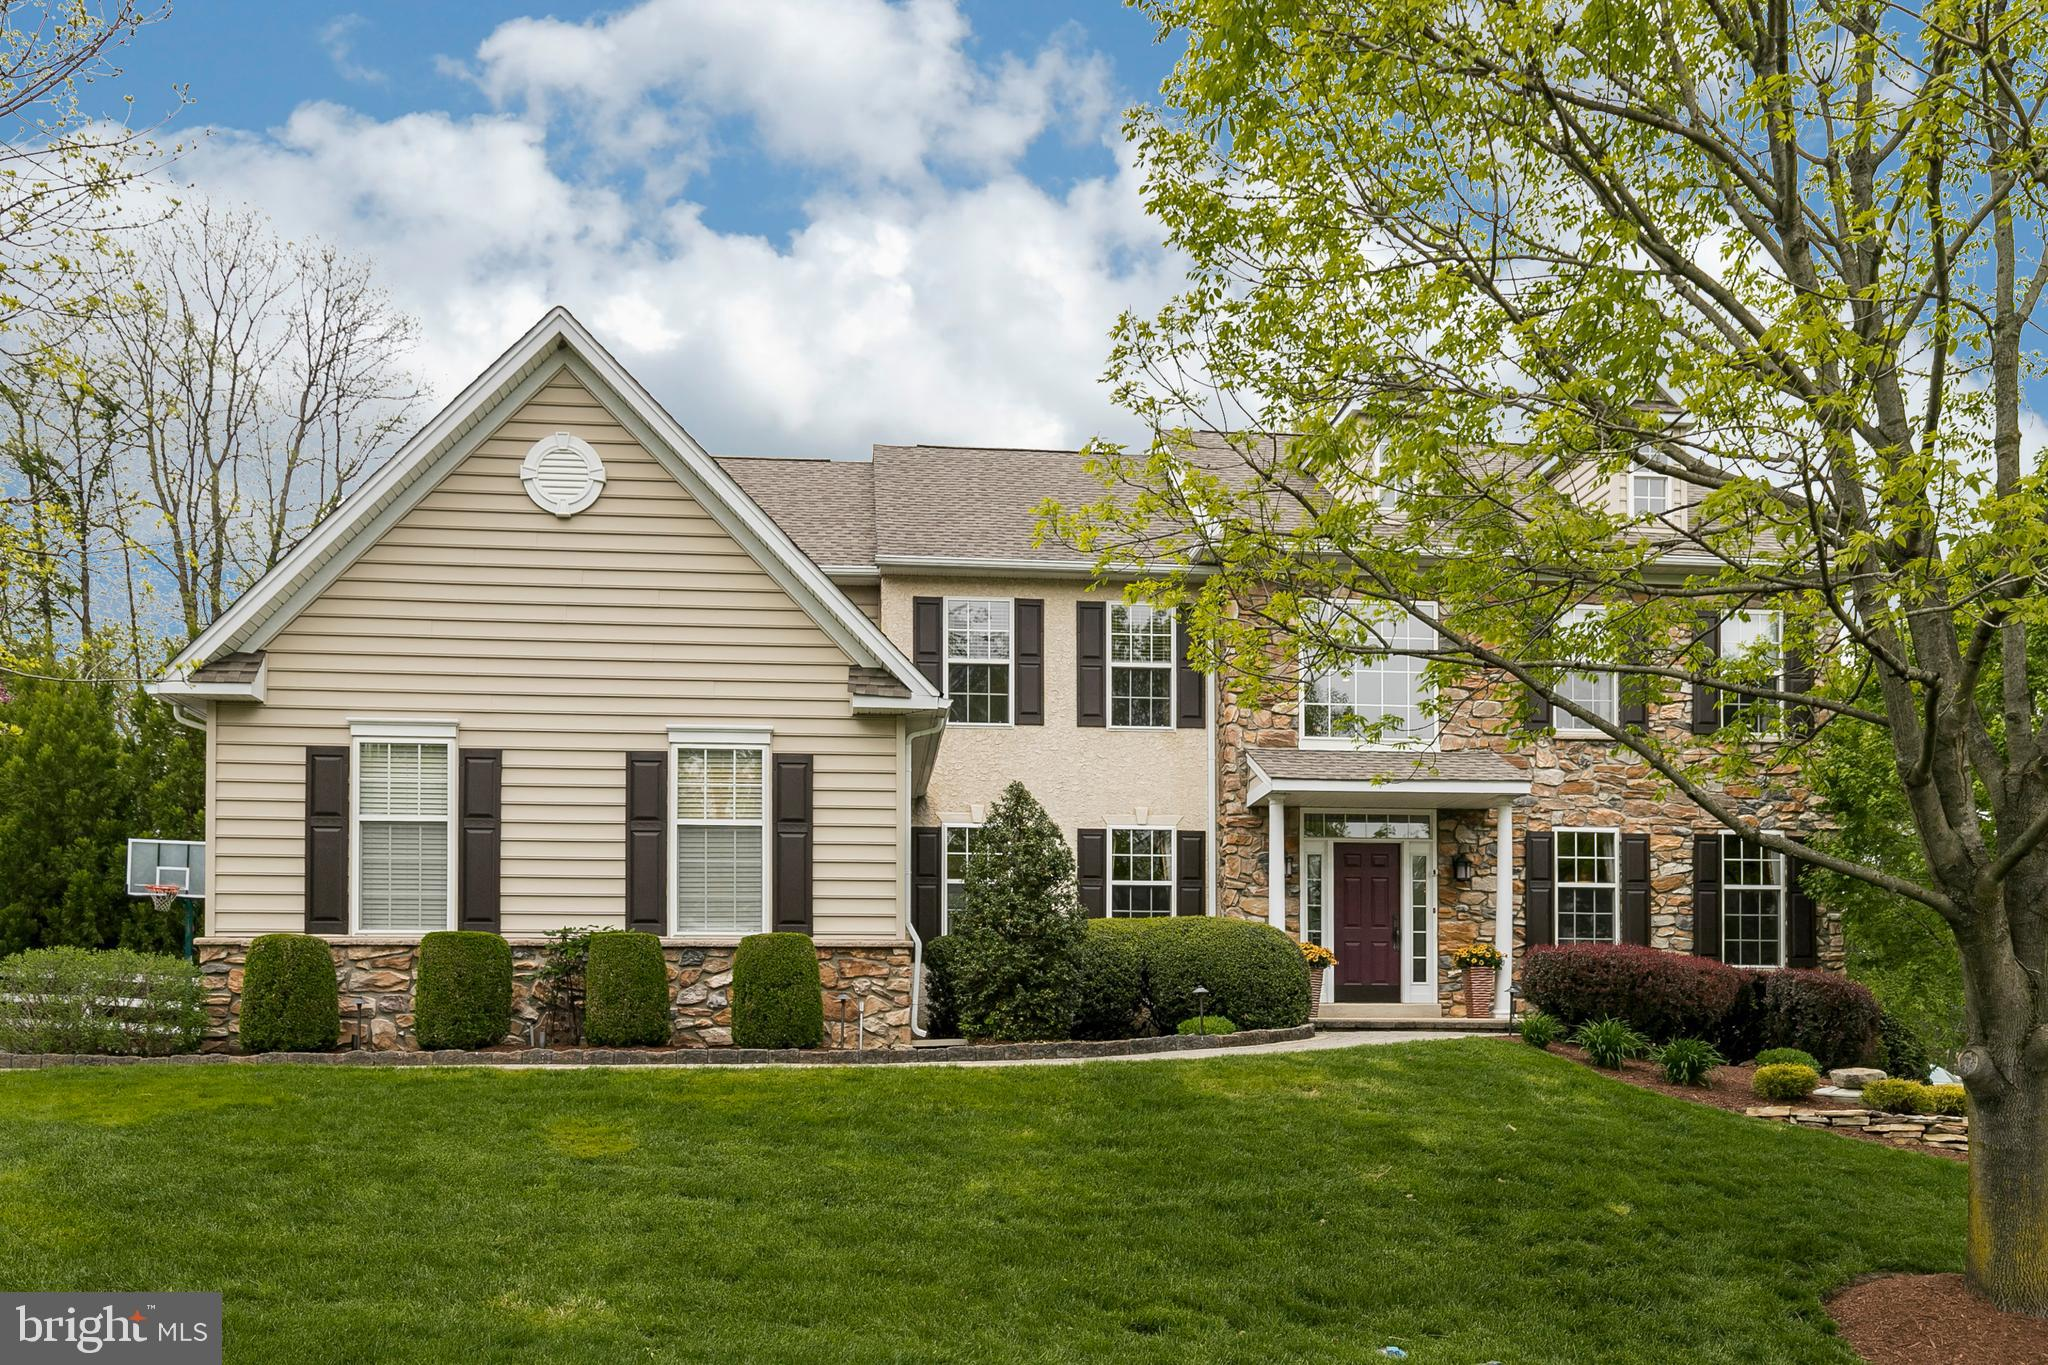 15 FORWOOD DRIVE, GARNET VALLEY, PA 19060